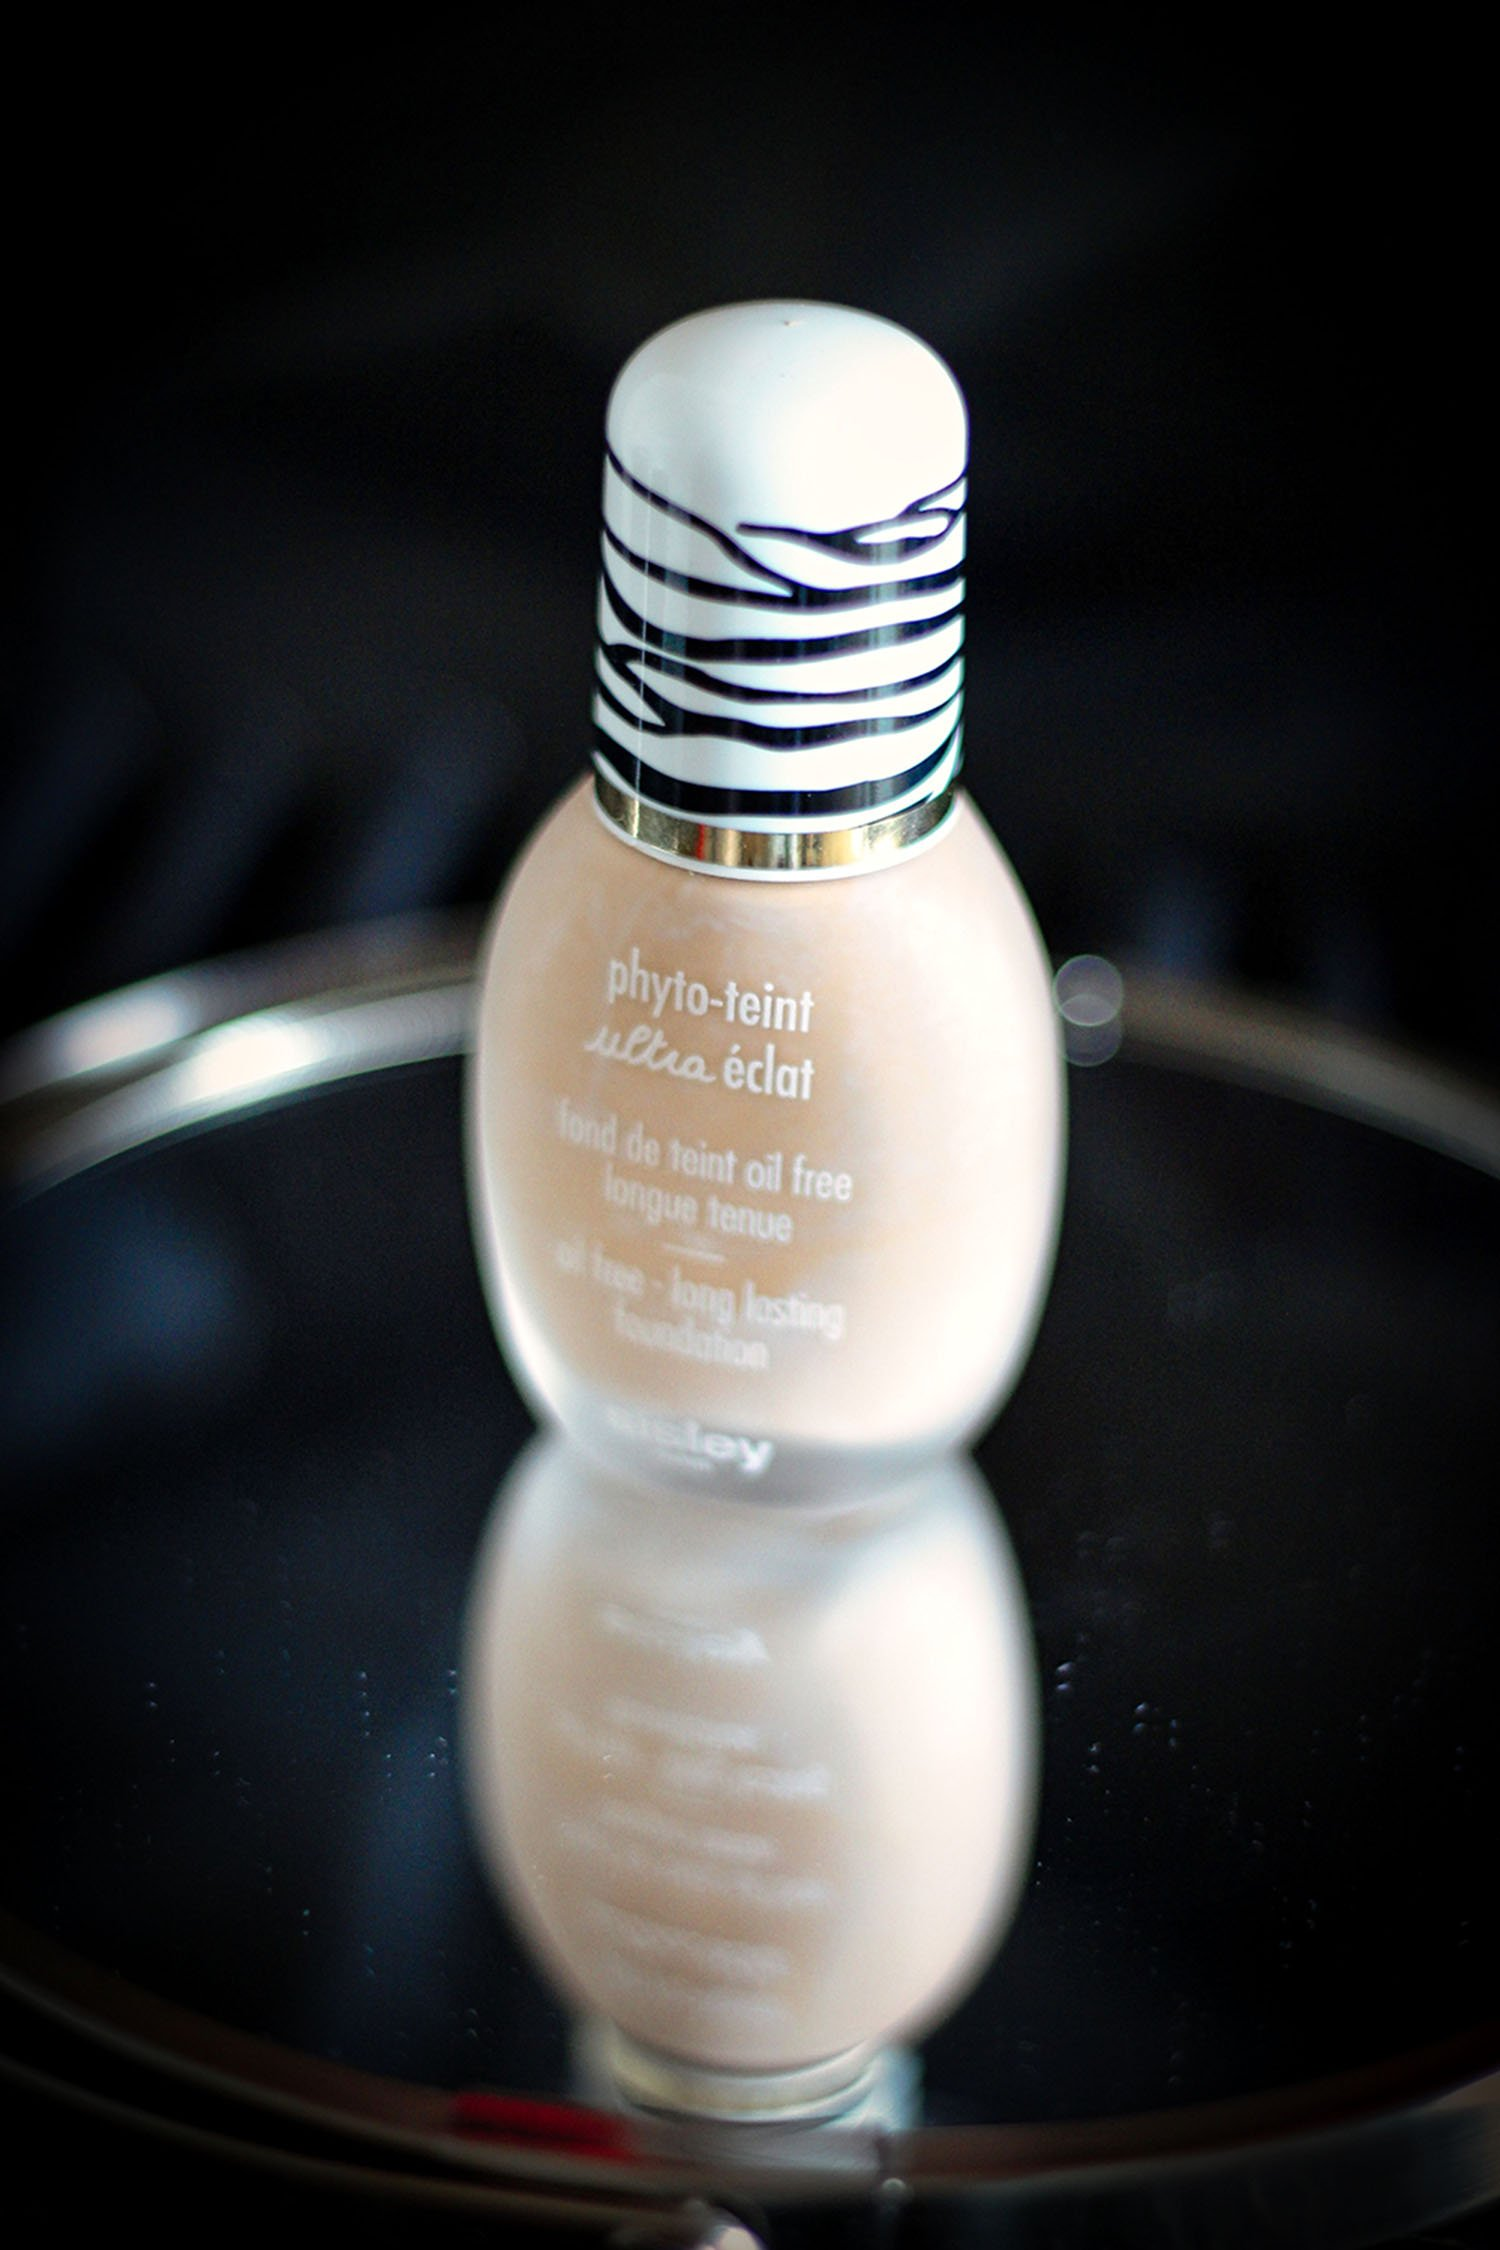 conny doll lifestyle: Best of Foundations, 40plus-Haut, Makeup, sisley , touch eclat foundation